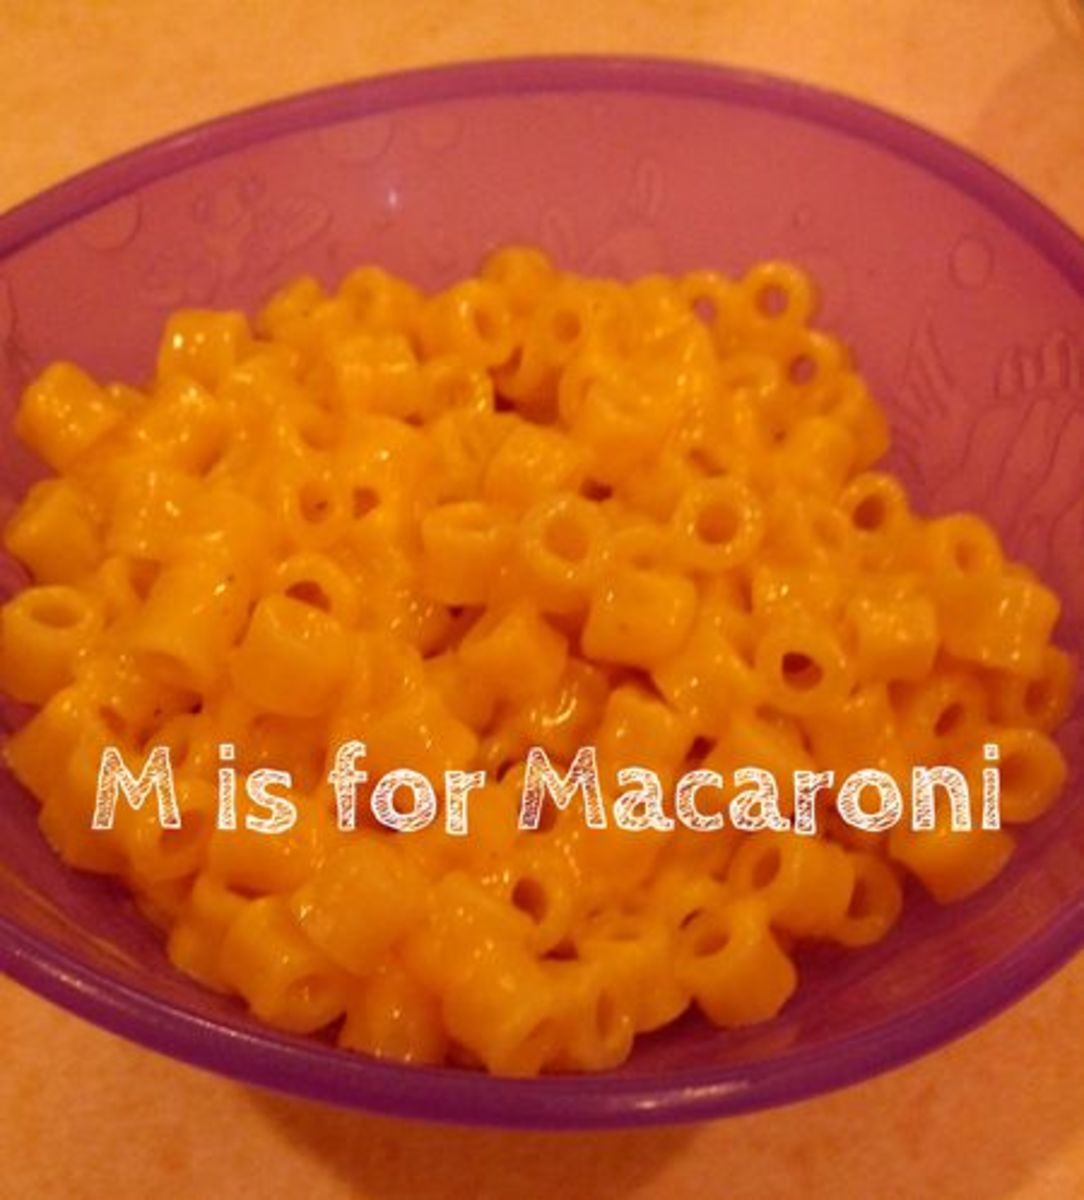 M is for Macaroni | Alphabet Activities for Kids